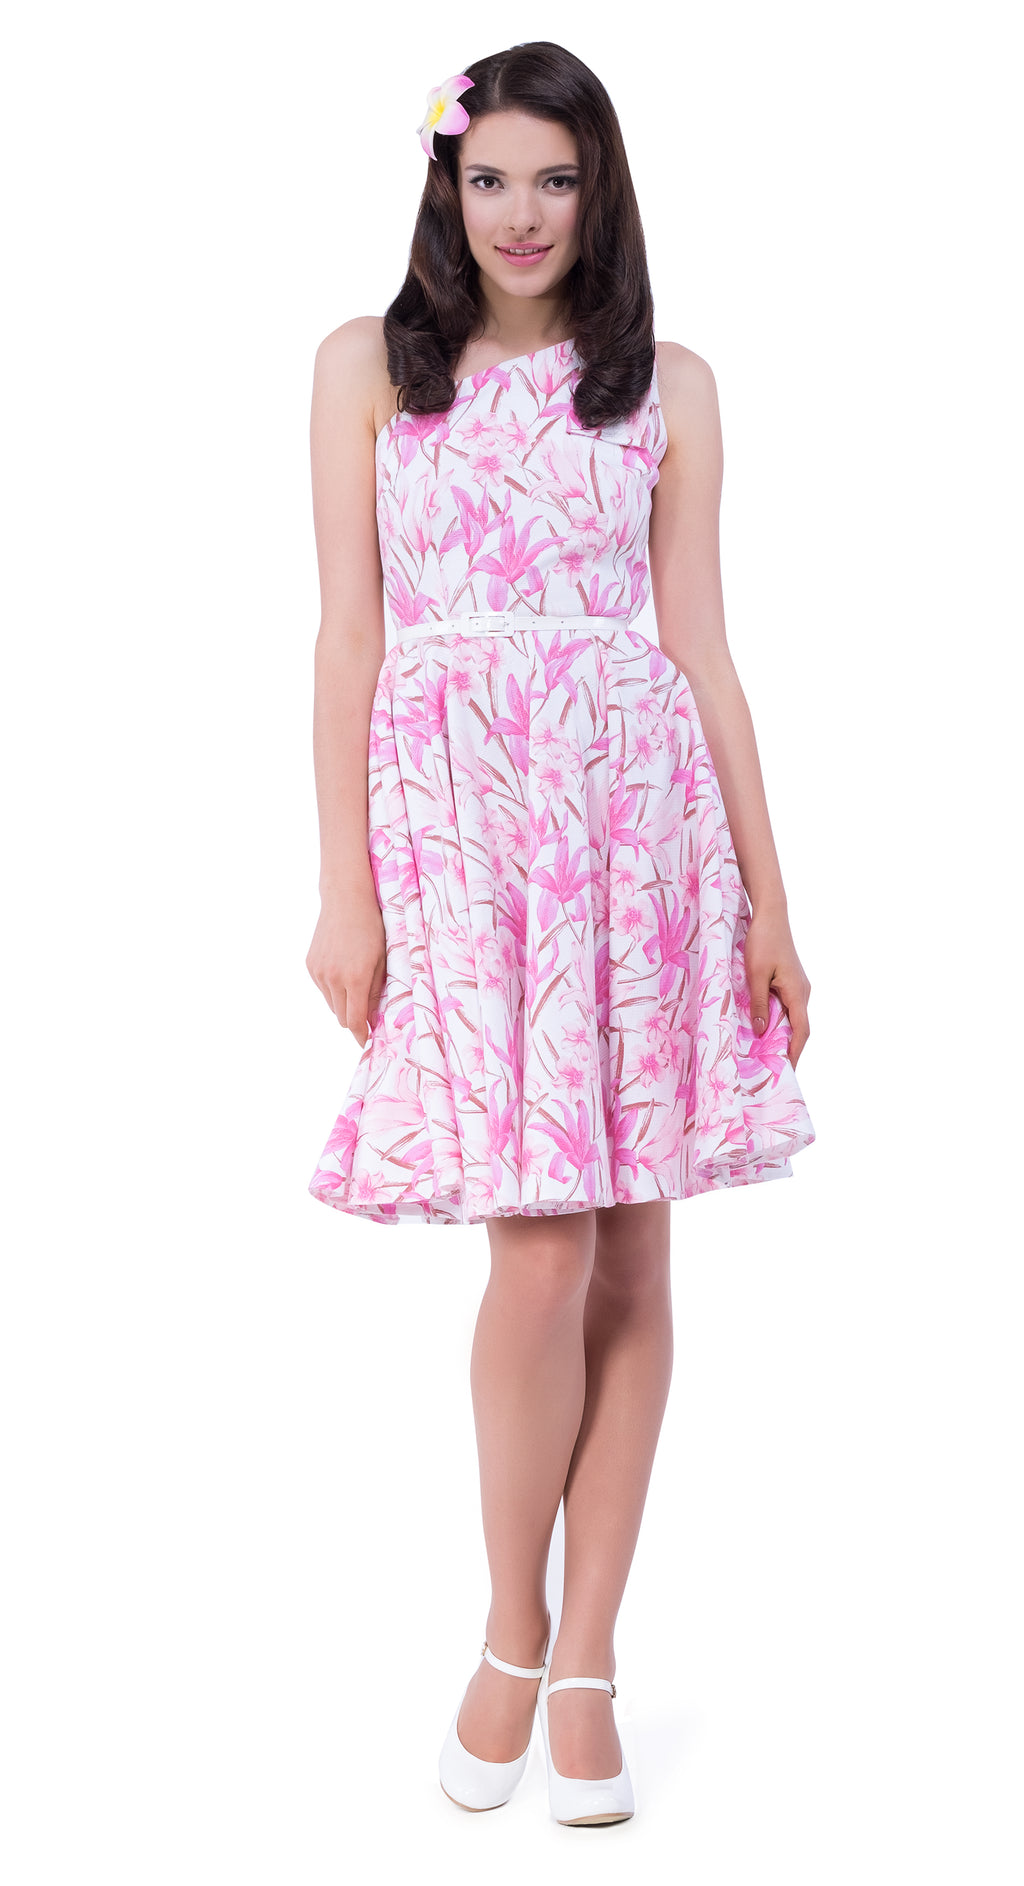 This fitted 50s tiki floral pattern Spanish fabric dress has a large bow on one shoulder to compliment the simplicity of the flattering cut. A vintage style cocktail dress with angled neckline; easy to dress up for more memorable events by way of heels and clutch. Finished with a white faux leather belt and available in as shown pink or turquoise.